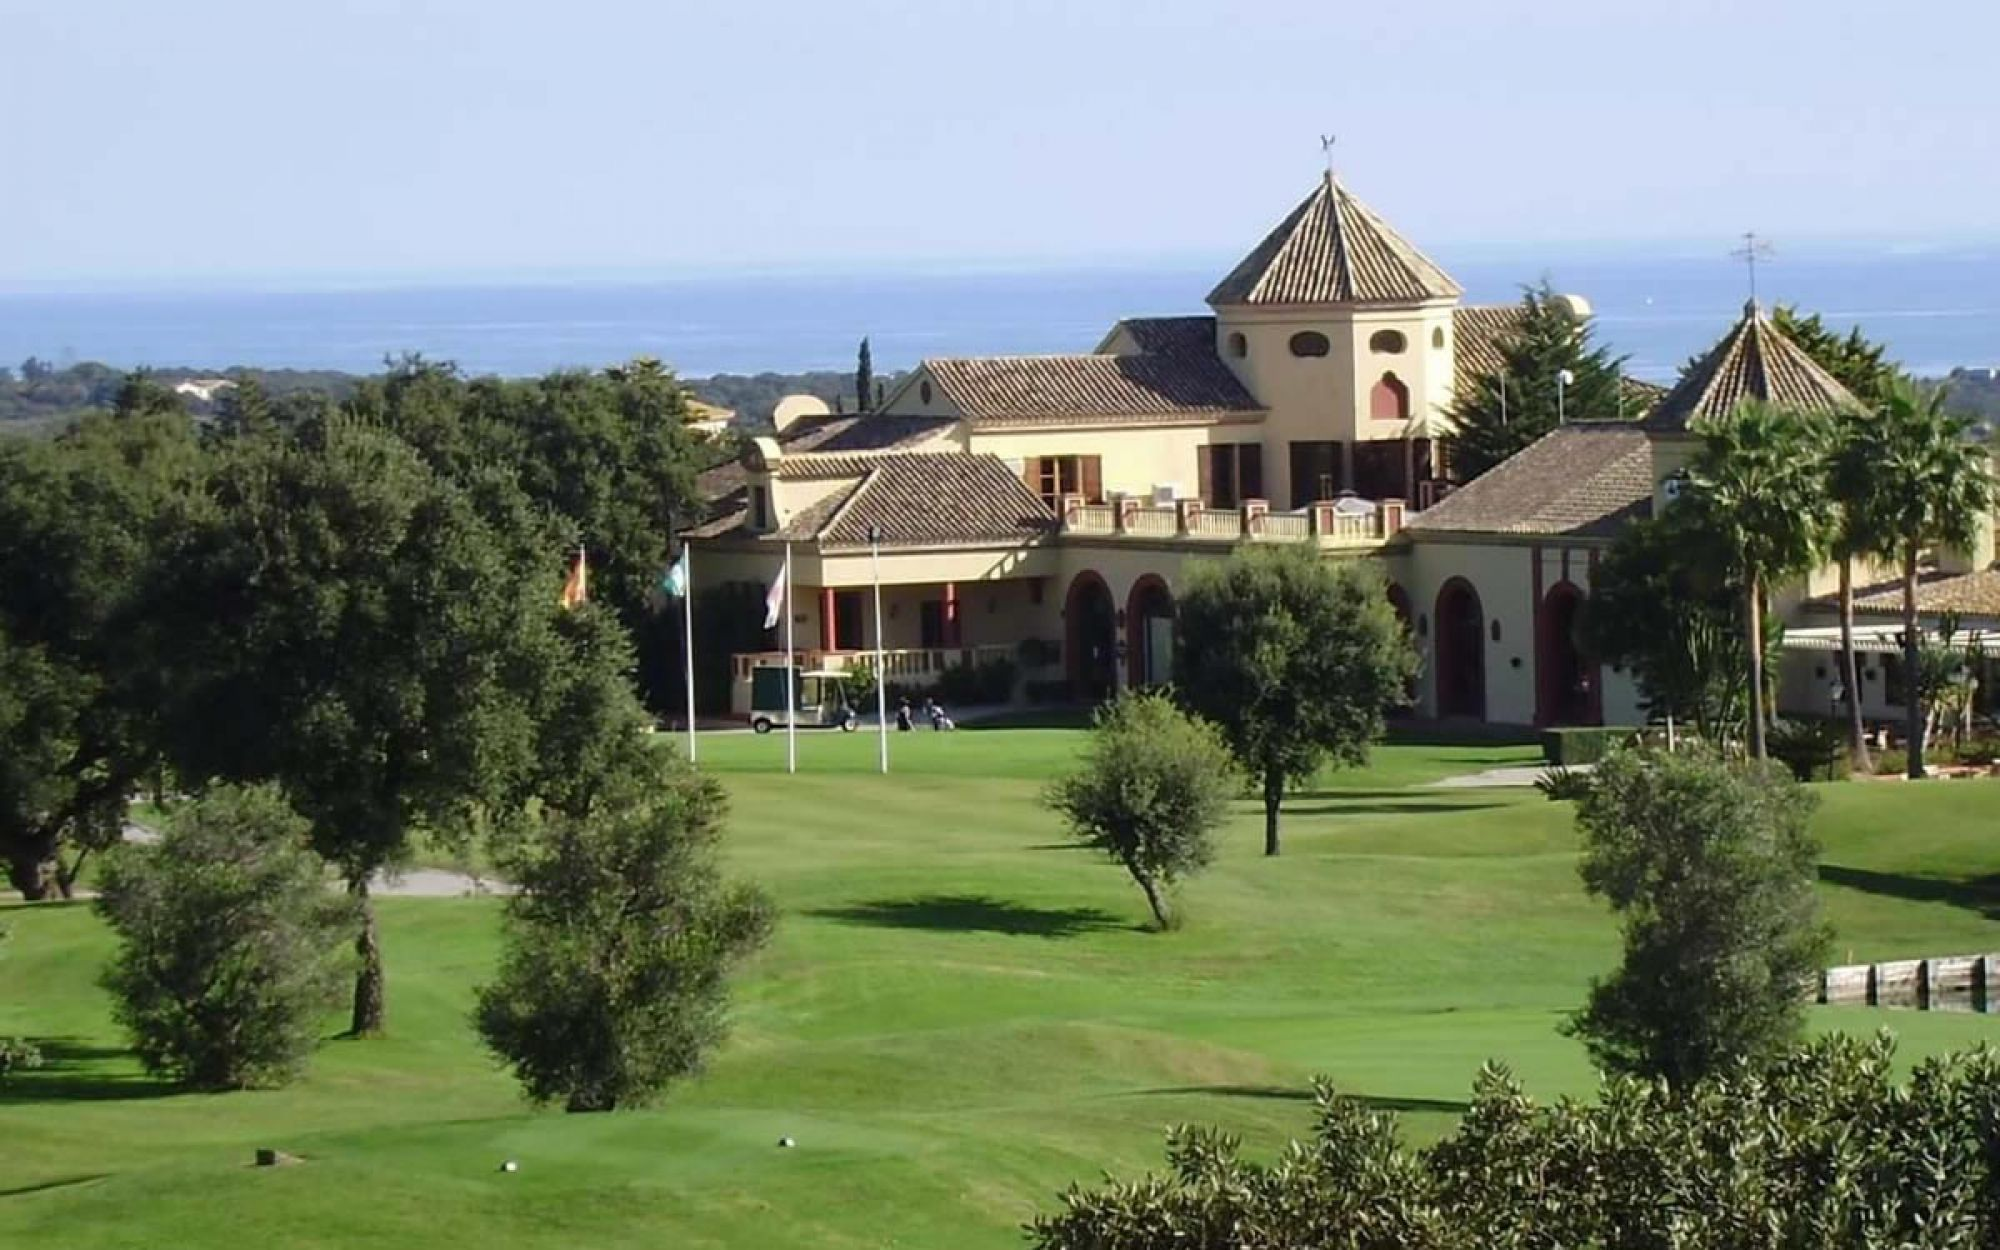 The San Roque Club - New Course's impressive golf course situated in striking Costa Del Sol.